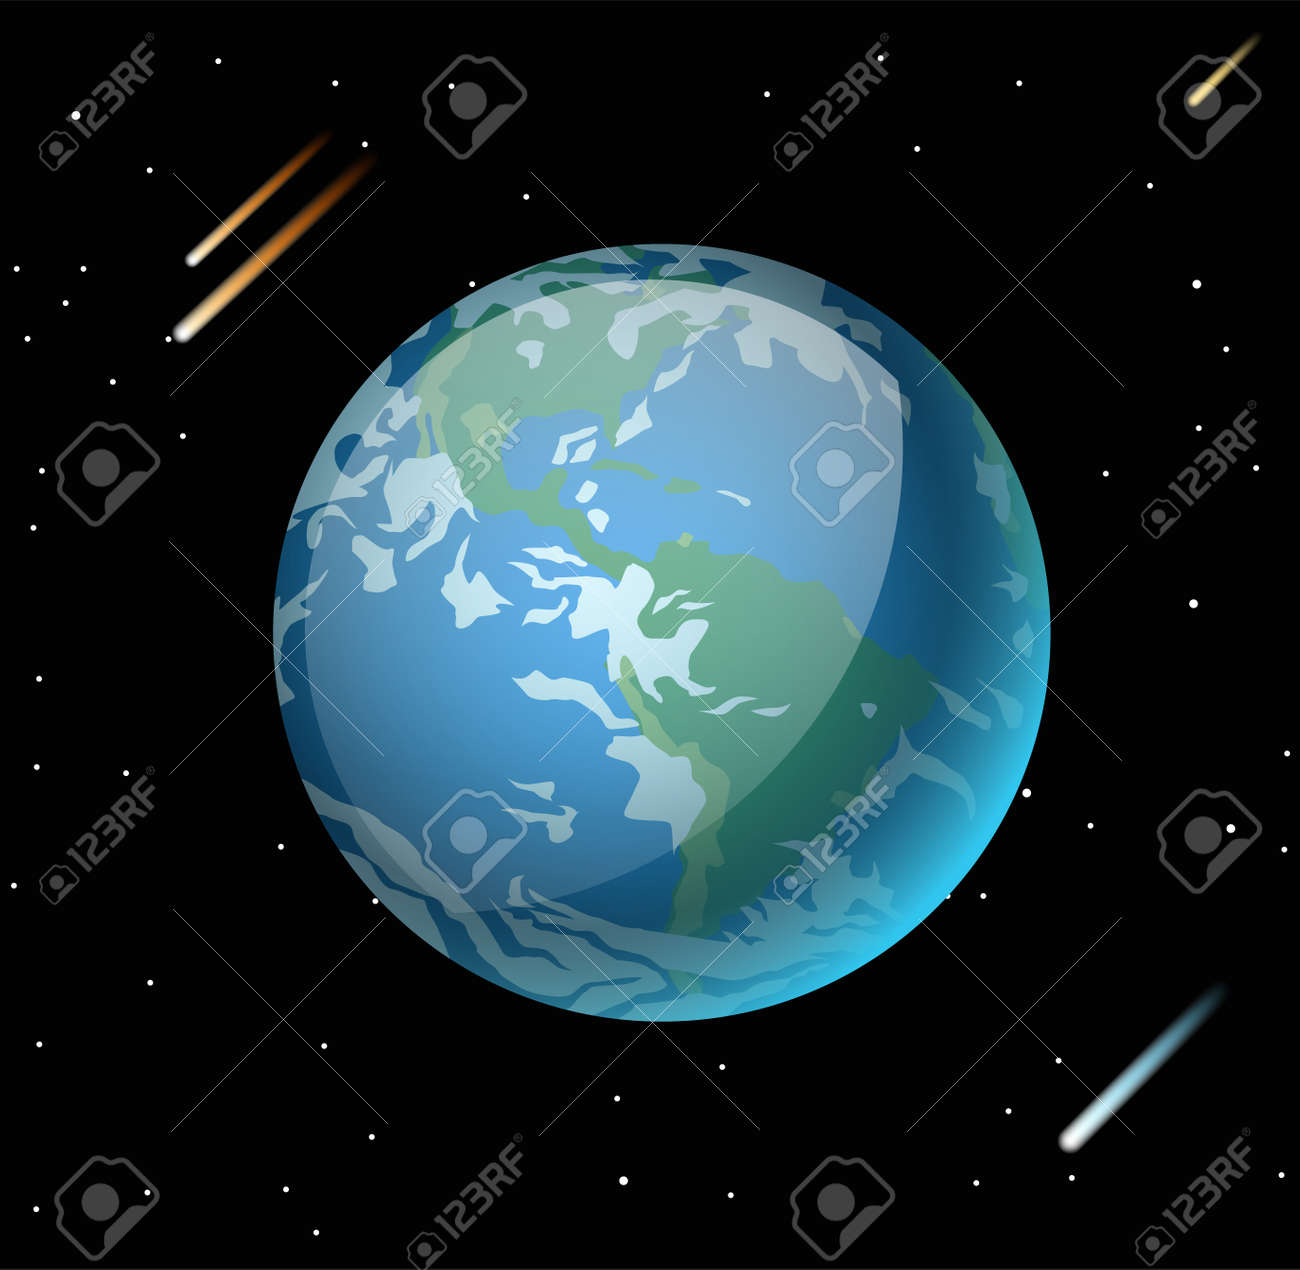 Earth planet 3d vector illustration globe earth texture map earth planet 3d vector illustration globe earth texture map globe vector earth view from gumiabroncs Image collections